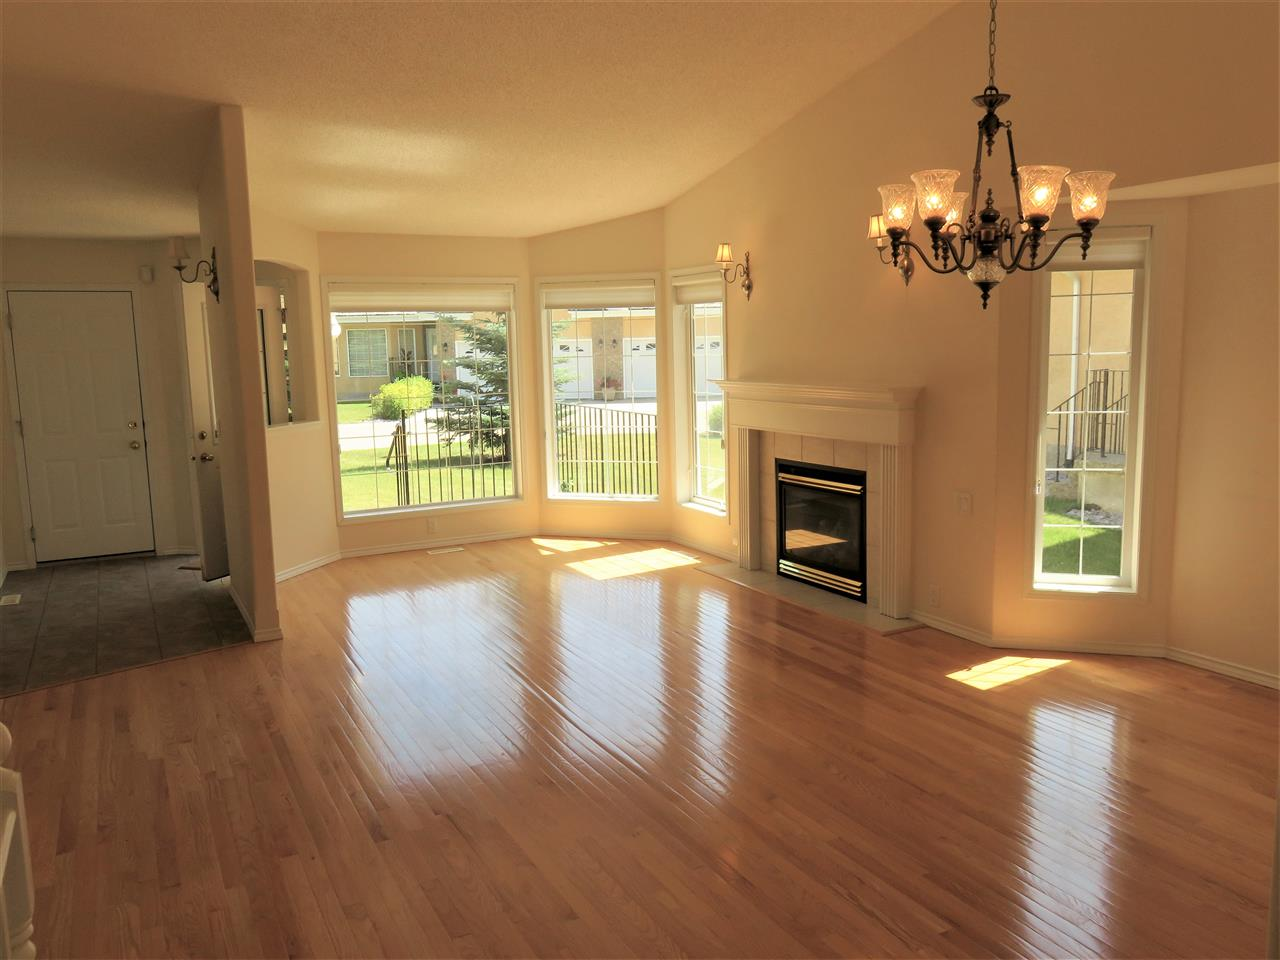 Here is a full view of both the Living Room & Formal Dining Room! Note the beautiful HARDWOOD & VAULTED CEILINGS TOO! :)